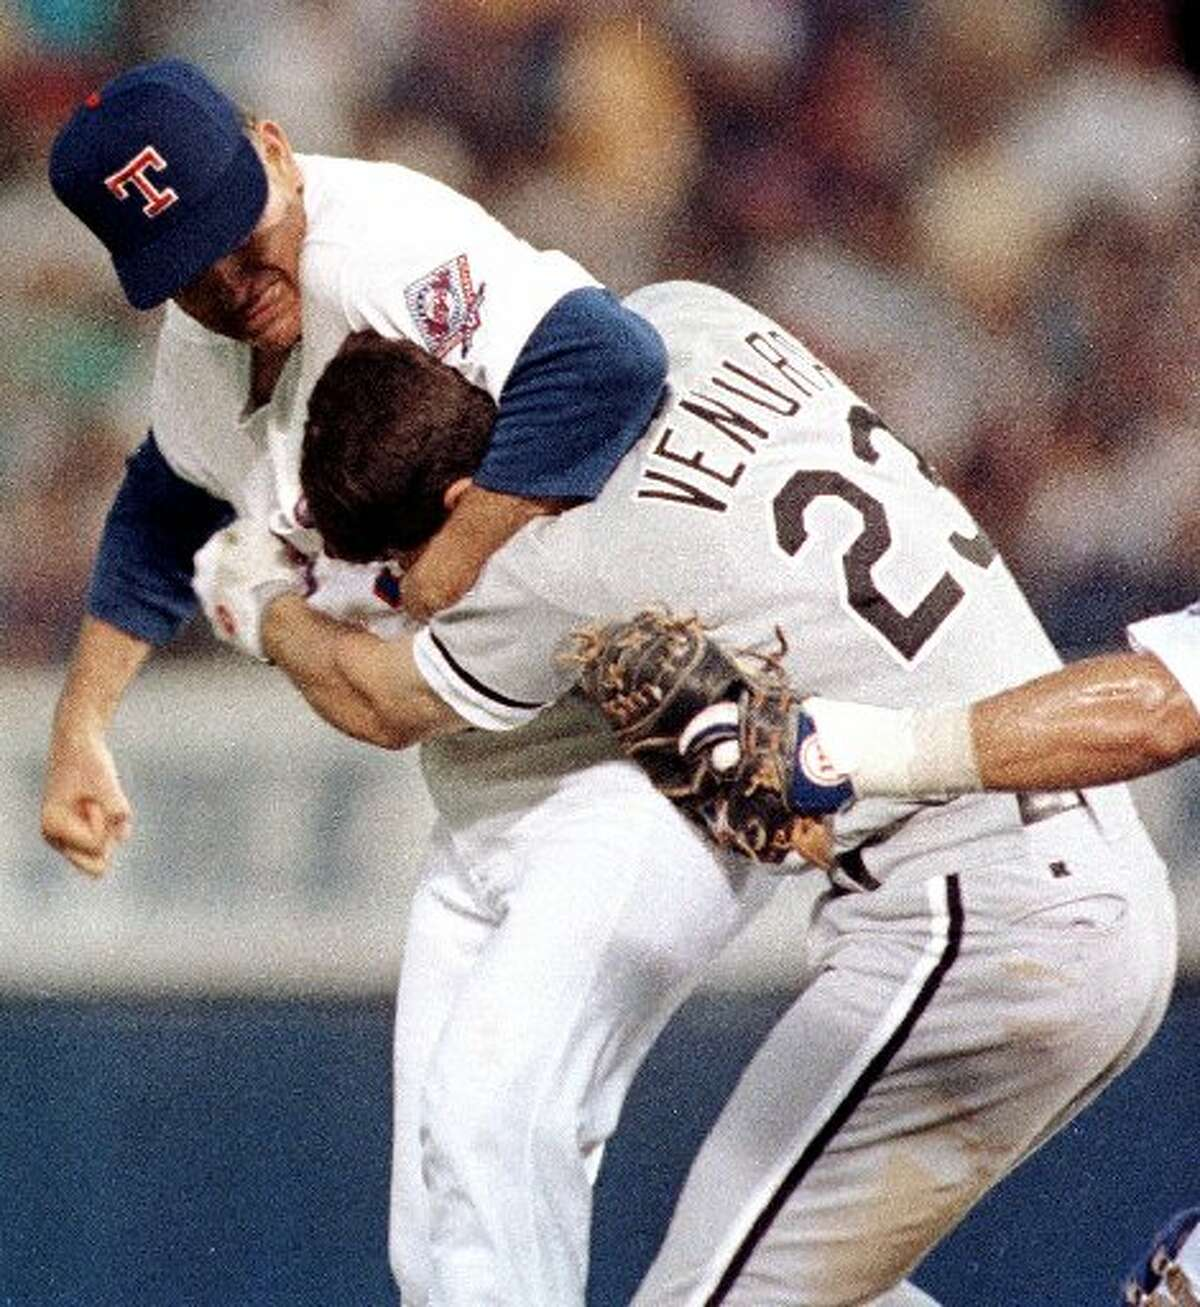 Nolan Ryan Through The Years THE MOST FAMOUS BASEBALL BEATDOWN EVER This classic photo shows Nolan Ryan's famous fight with Robin Ventura.